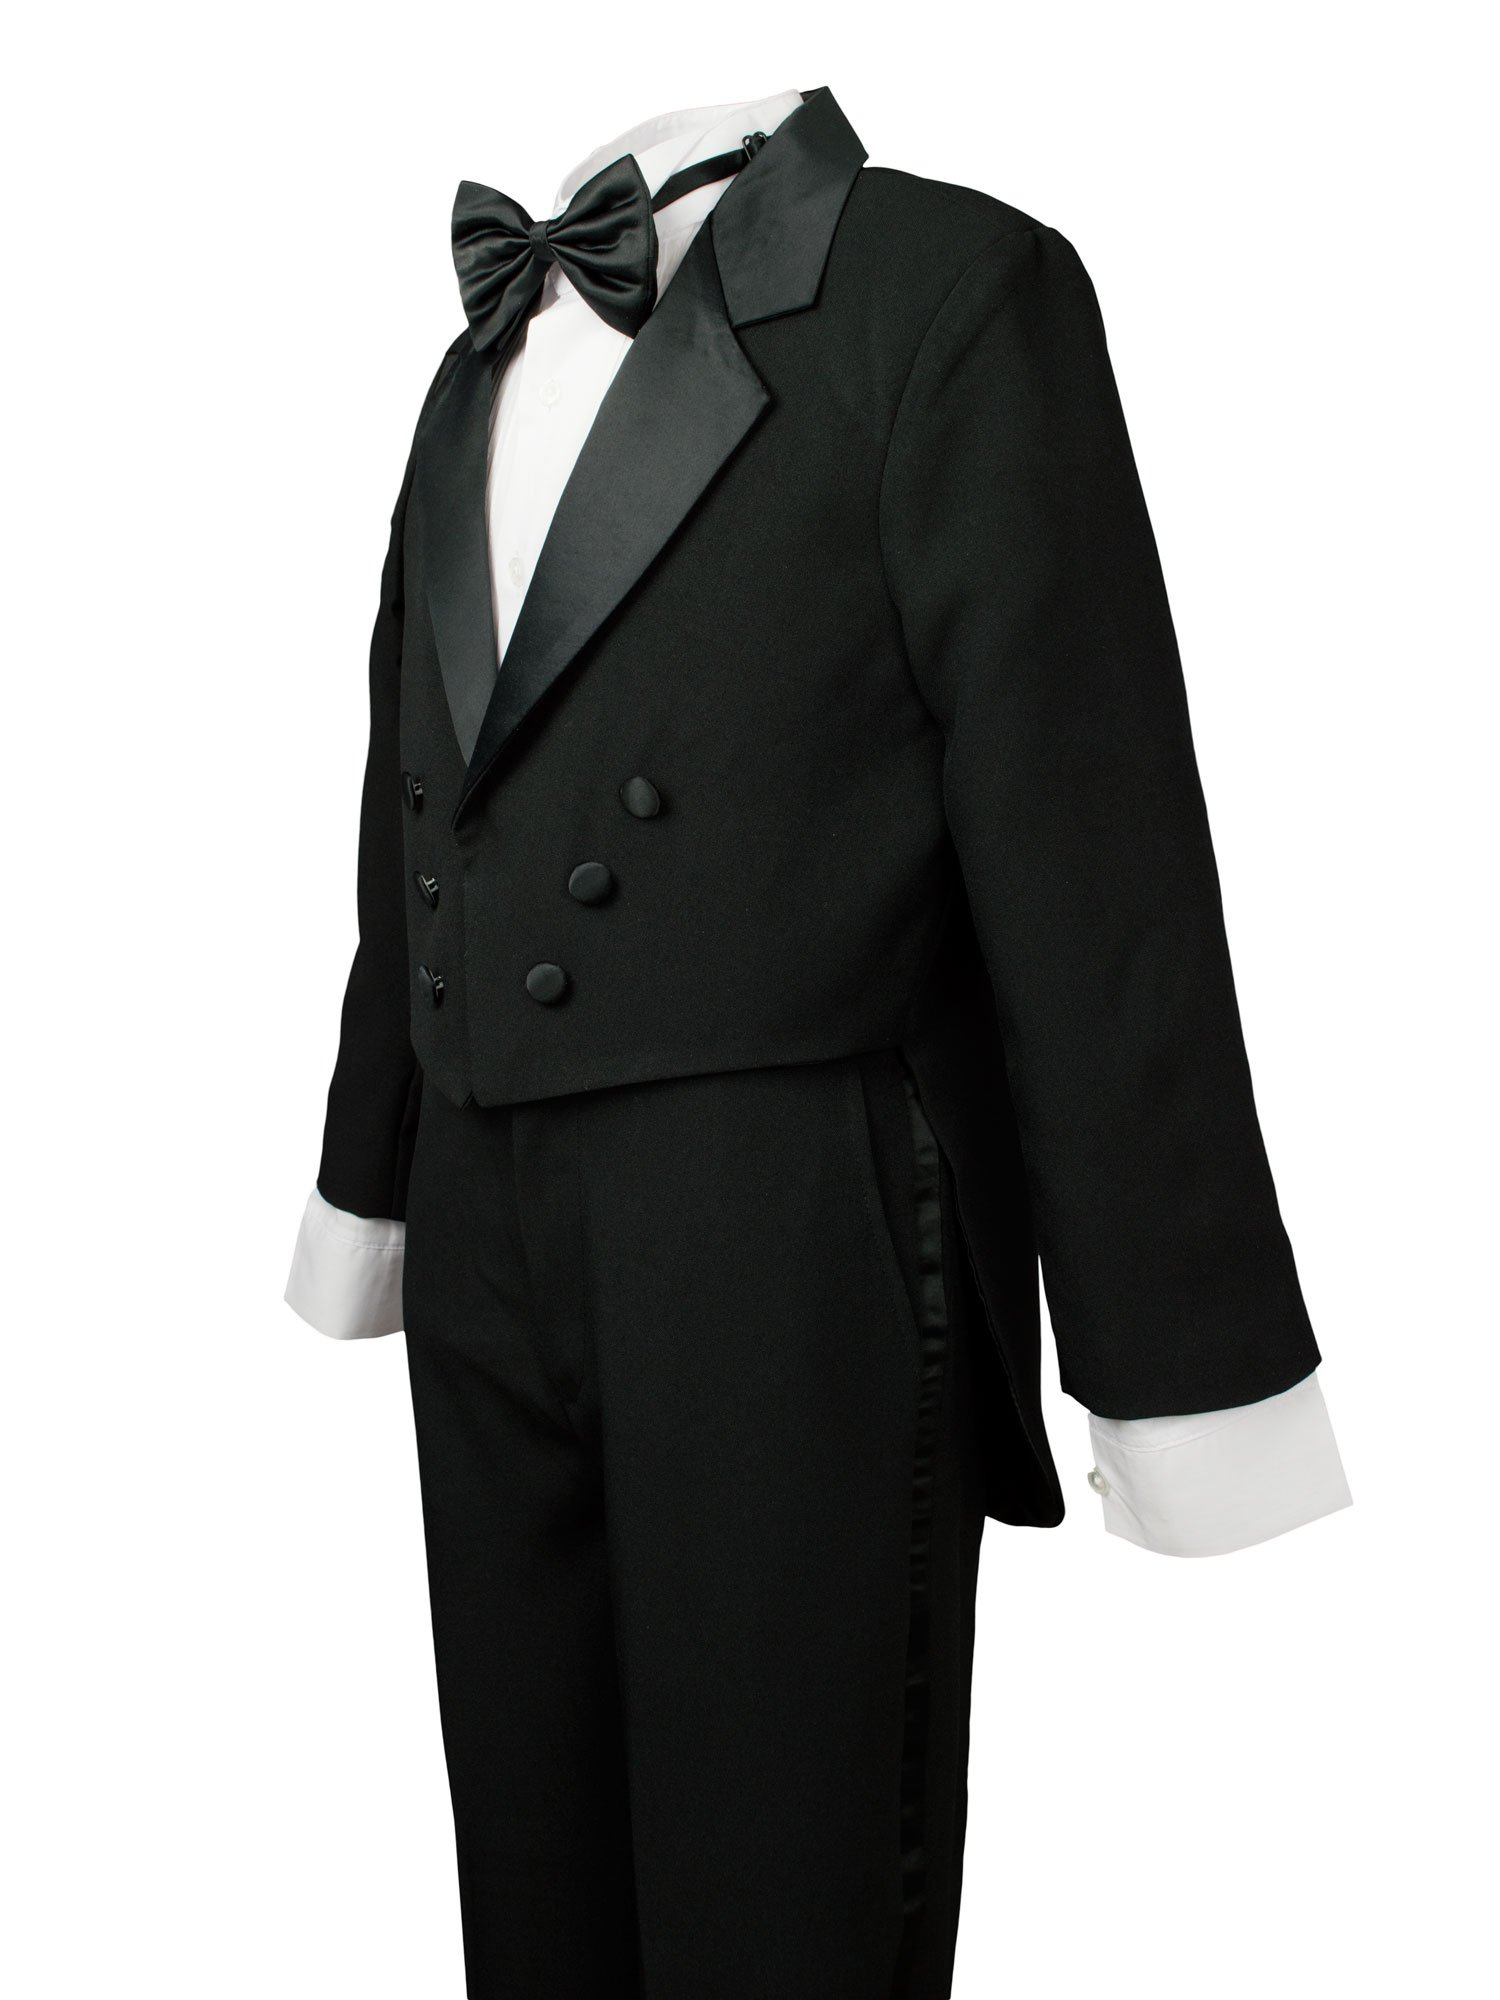 Spring Notion Boys' Black Classic Tuxedo with Tail Burgundy 4T by Spring Notion (Image #4)